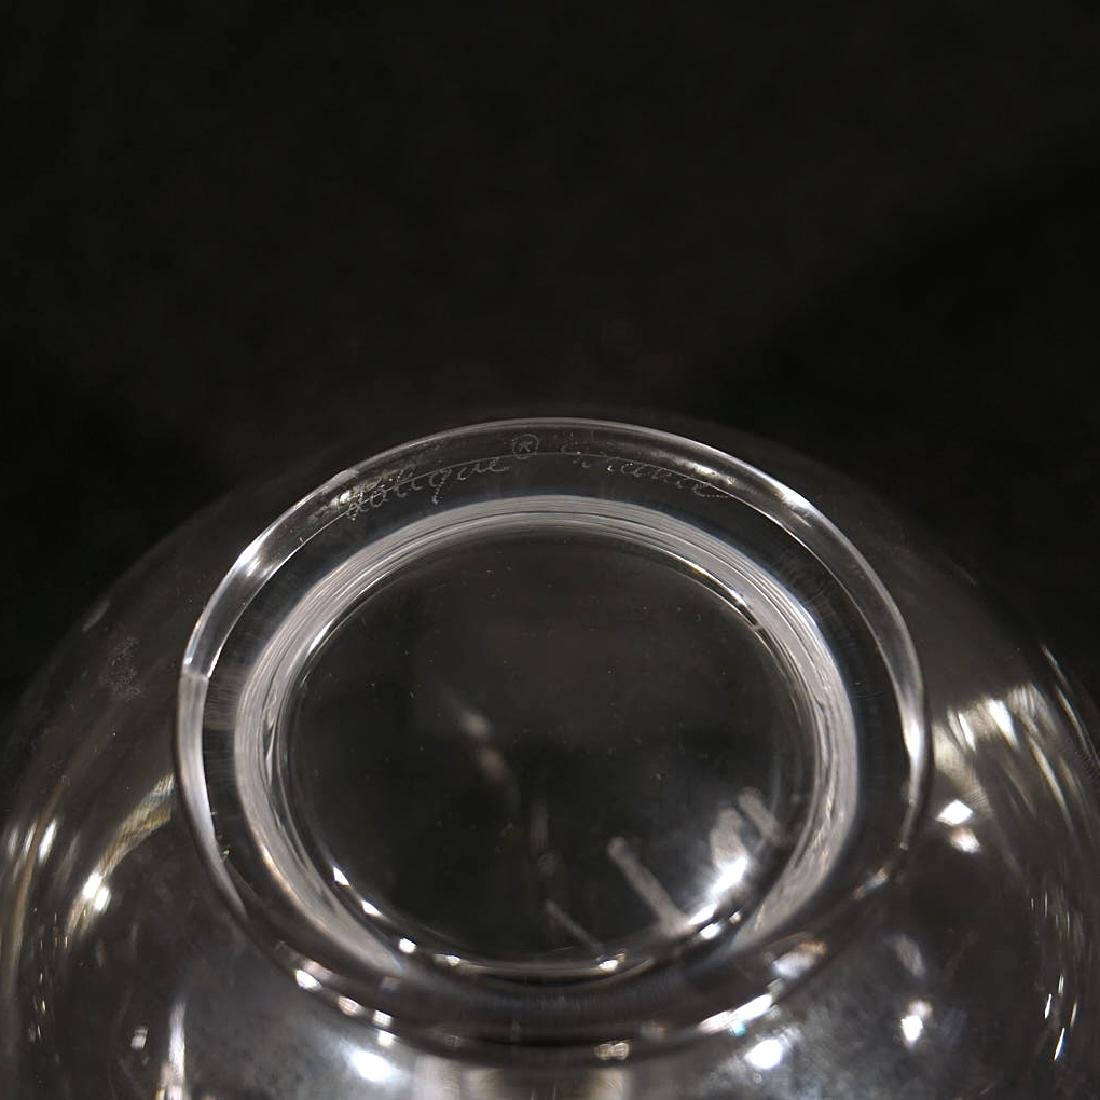 Five Glass/Crystal Perfume Bottles - 3